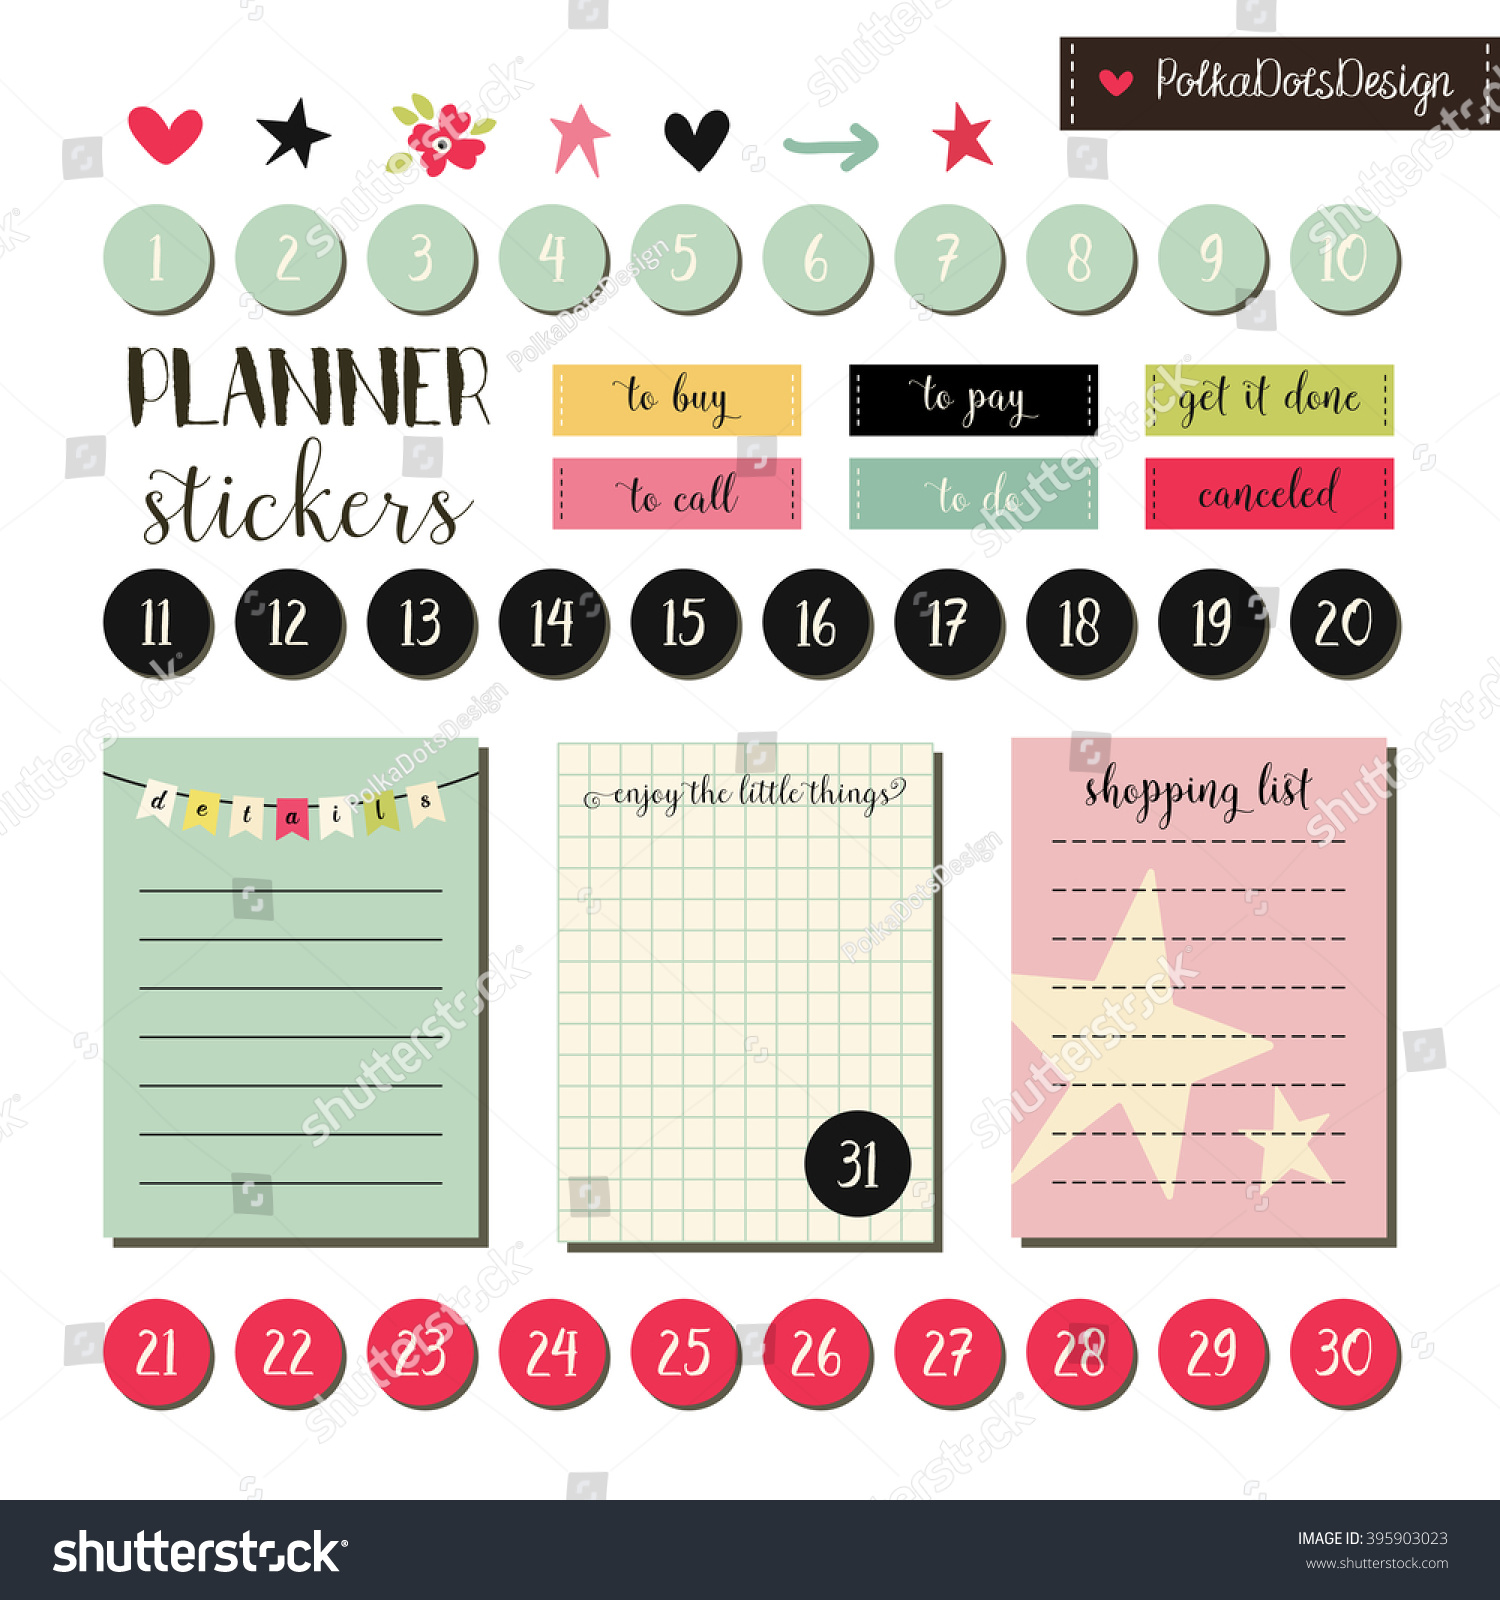 Planner Stickers Signs Symbols Objects Templates Stock Vector ... for Planner Stickers Template  54lyp